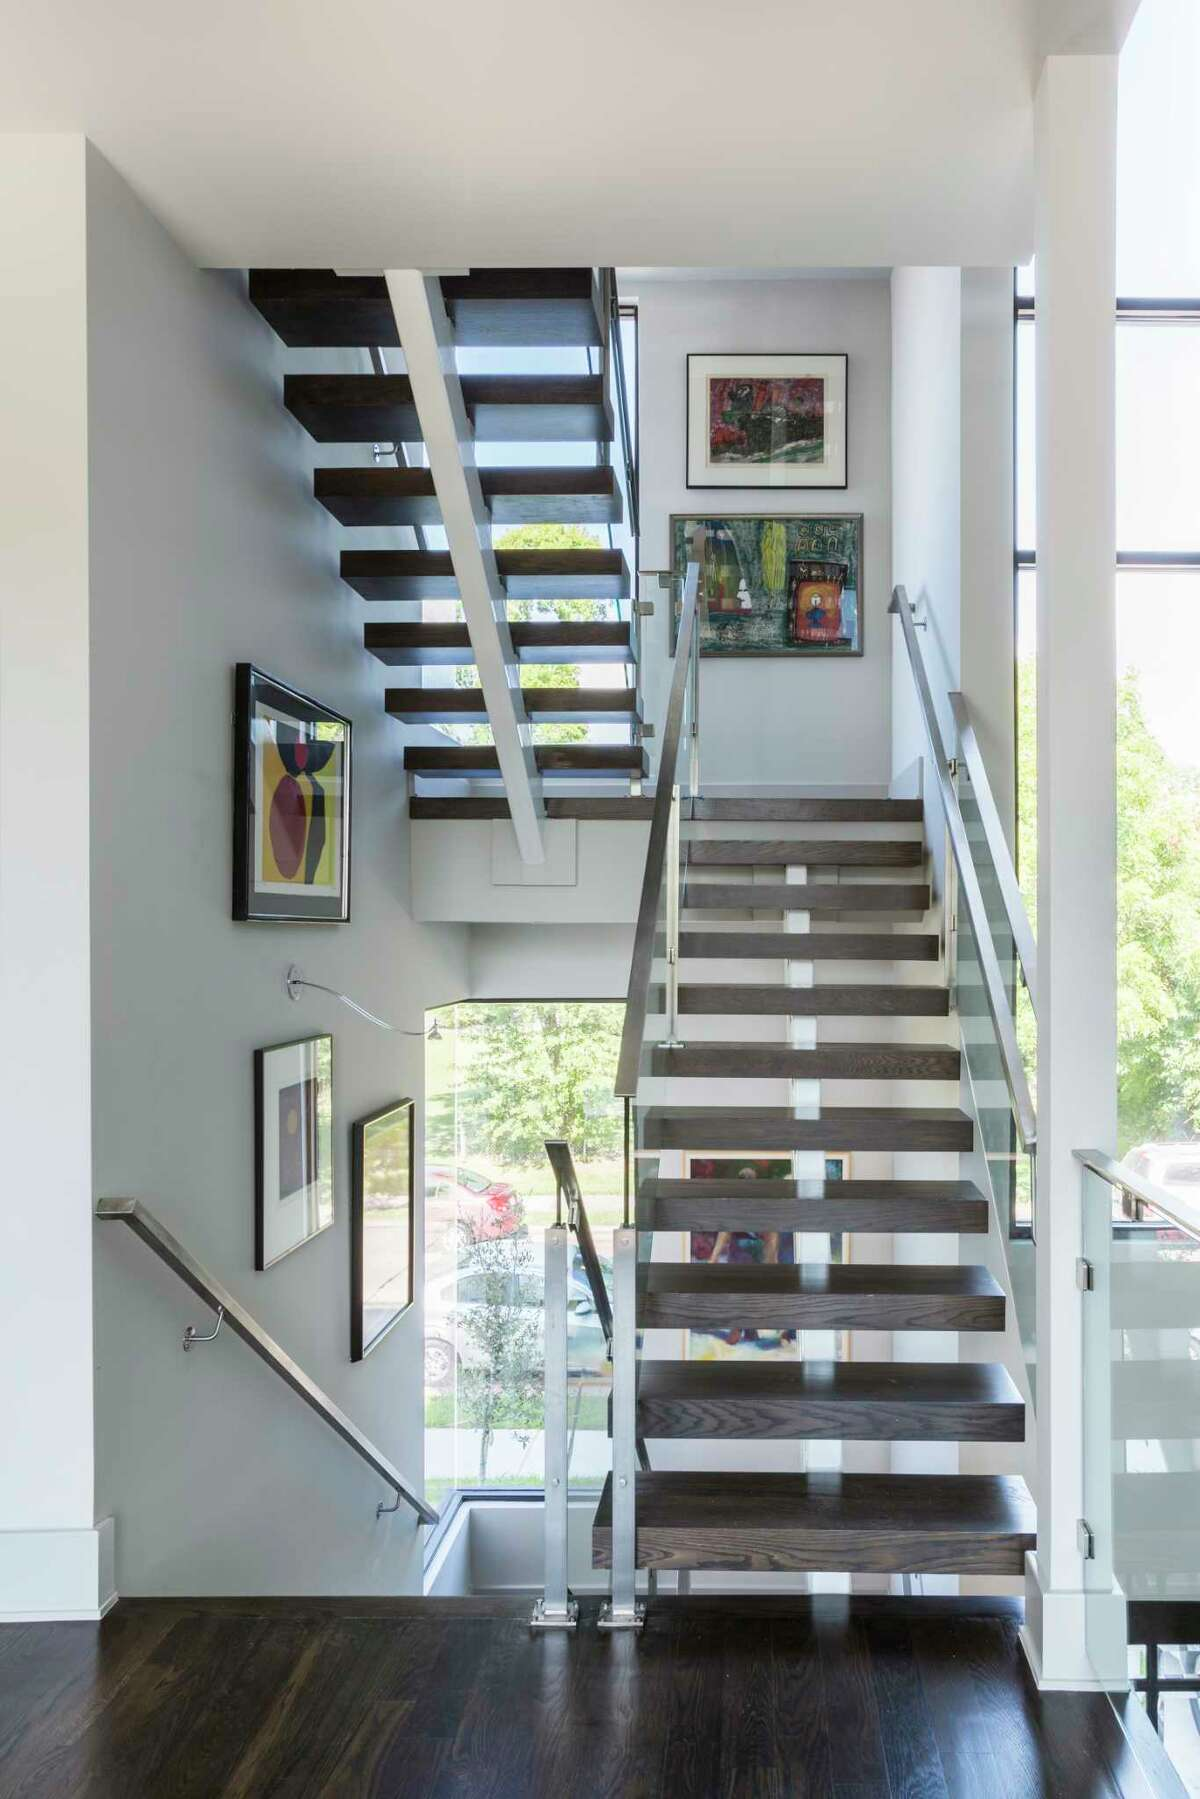 The stairwell is lined with art in the Lampasas Terrace home of Ed and Harriet Reitman.